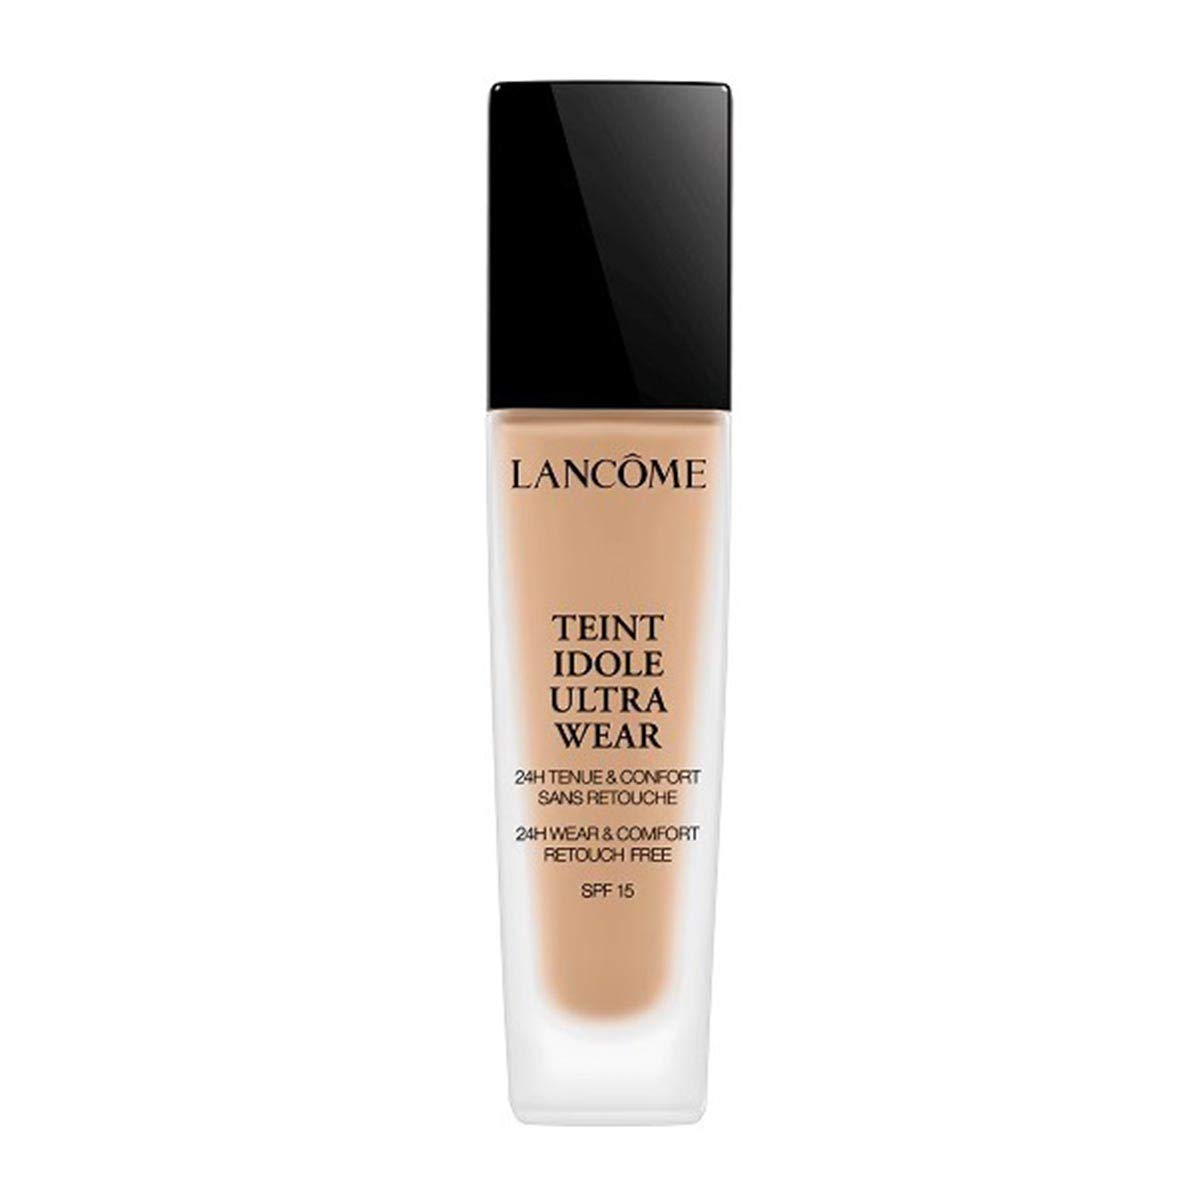 Lancome Teint Idole Ultra Wear 24H Wear & Comfort Foundation SPF 15 - # 04 Beige Nature 30ml/1oz